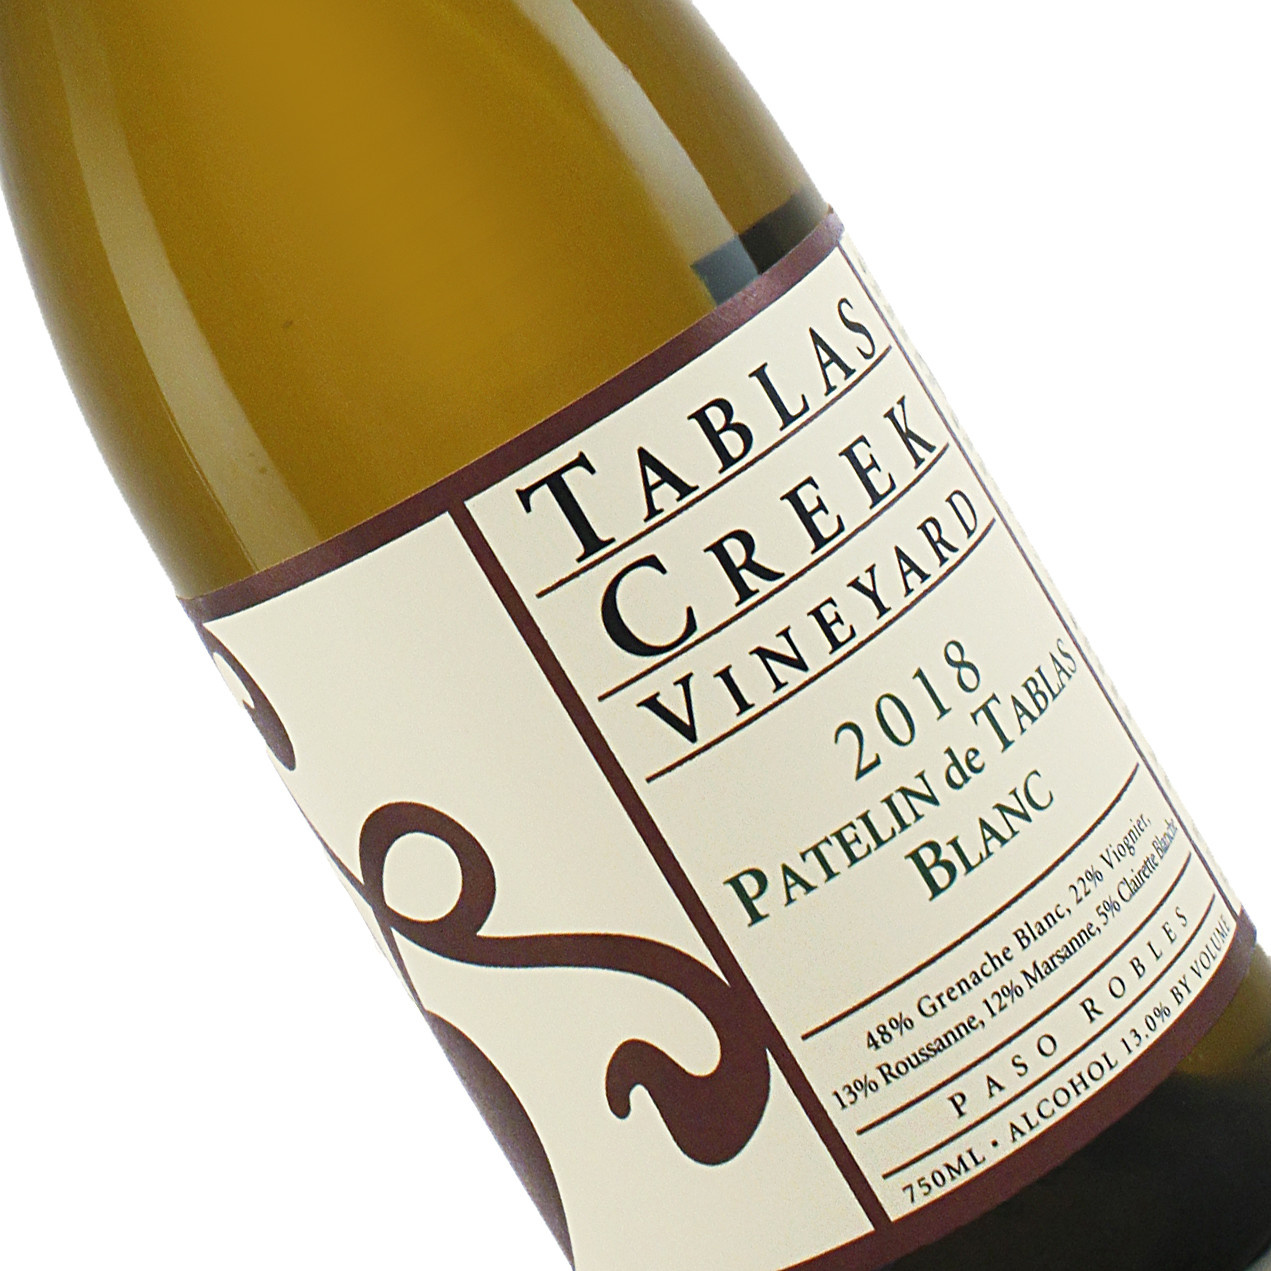 Tablas Creek 2018 Patelin de Tablas Blanc White Rhone Blend, Paso Robles